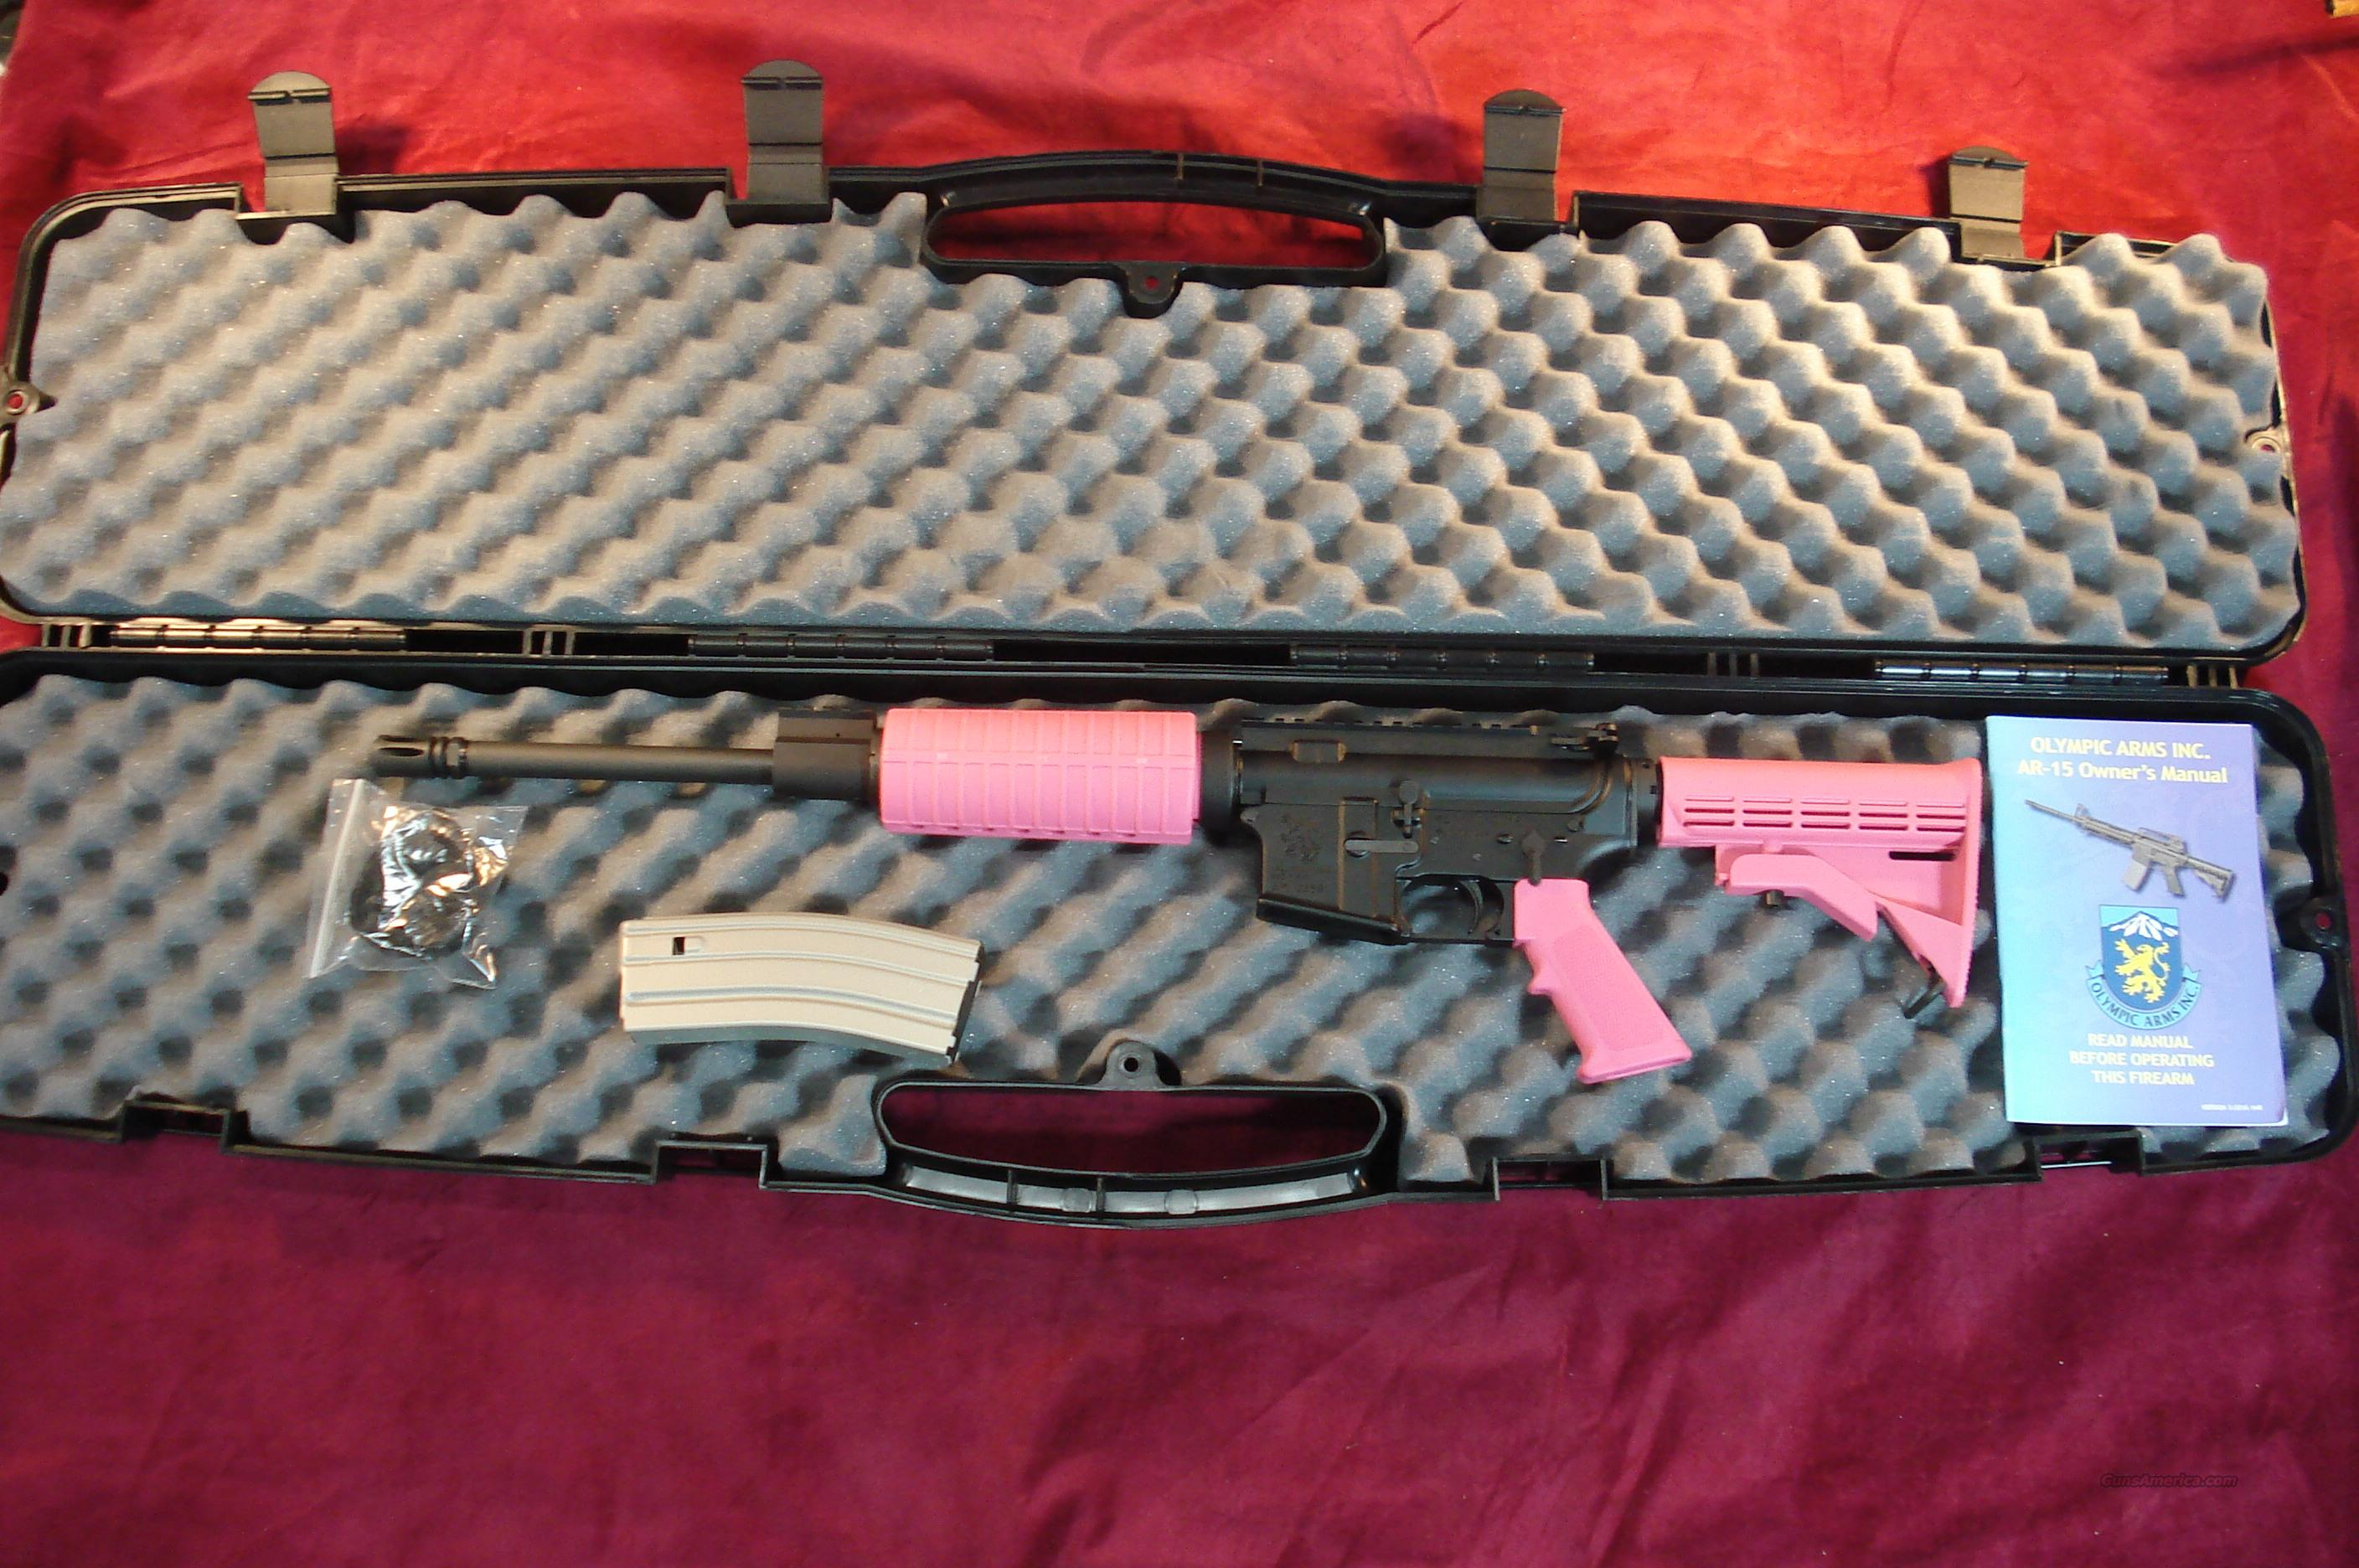 OLYMPIC ARMS PLINKER PLUS PINK AR15 223 CAL NEW... for sale